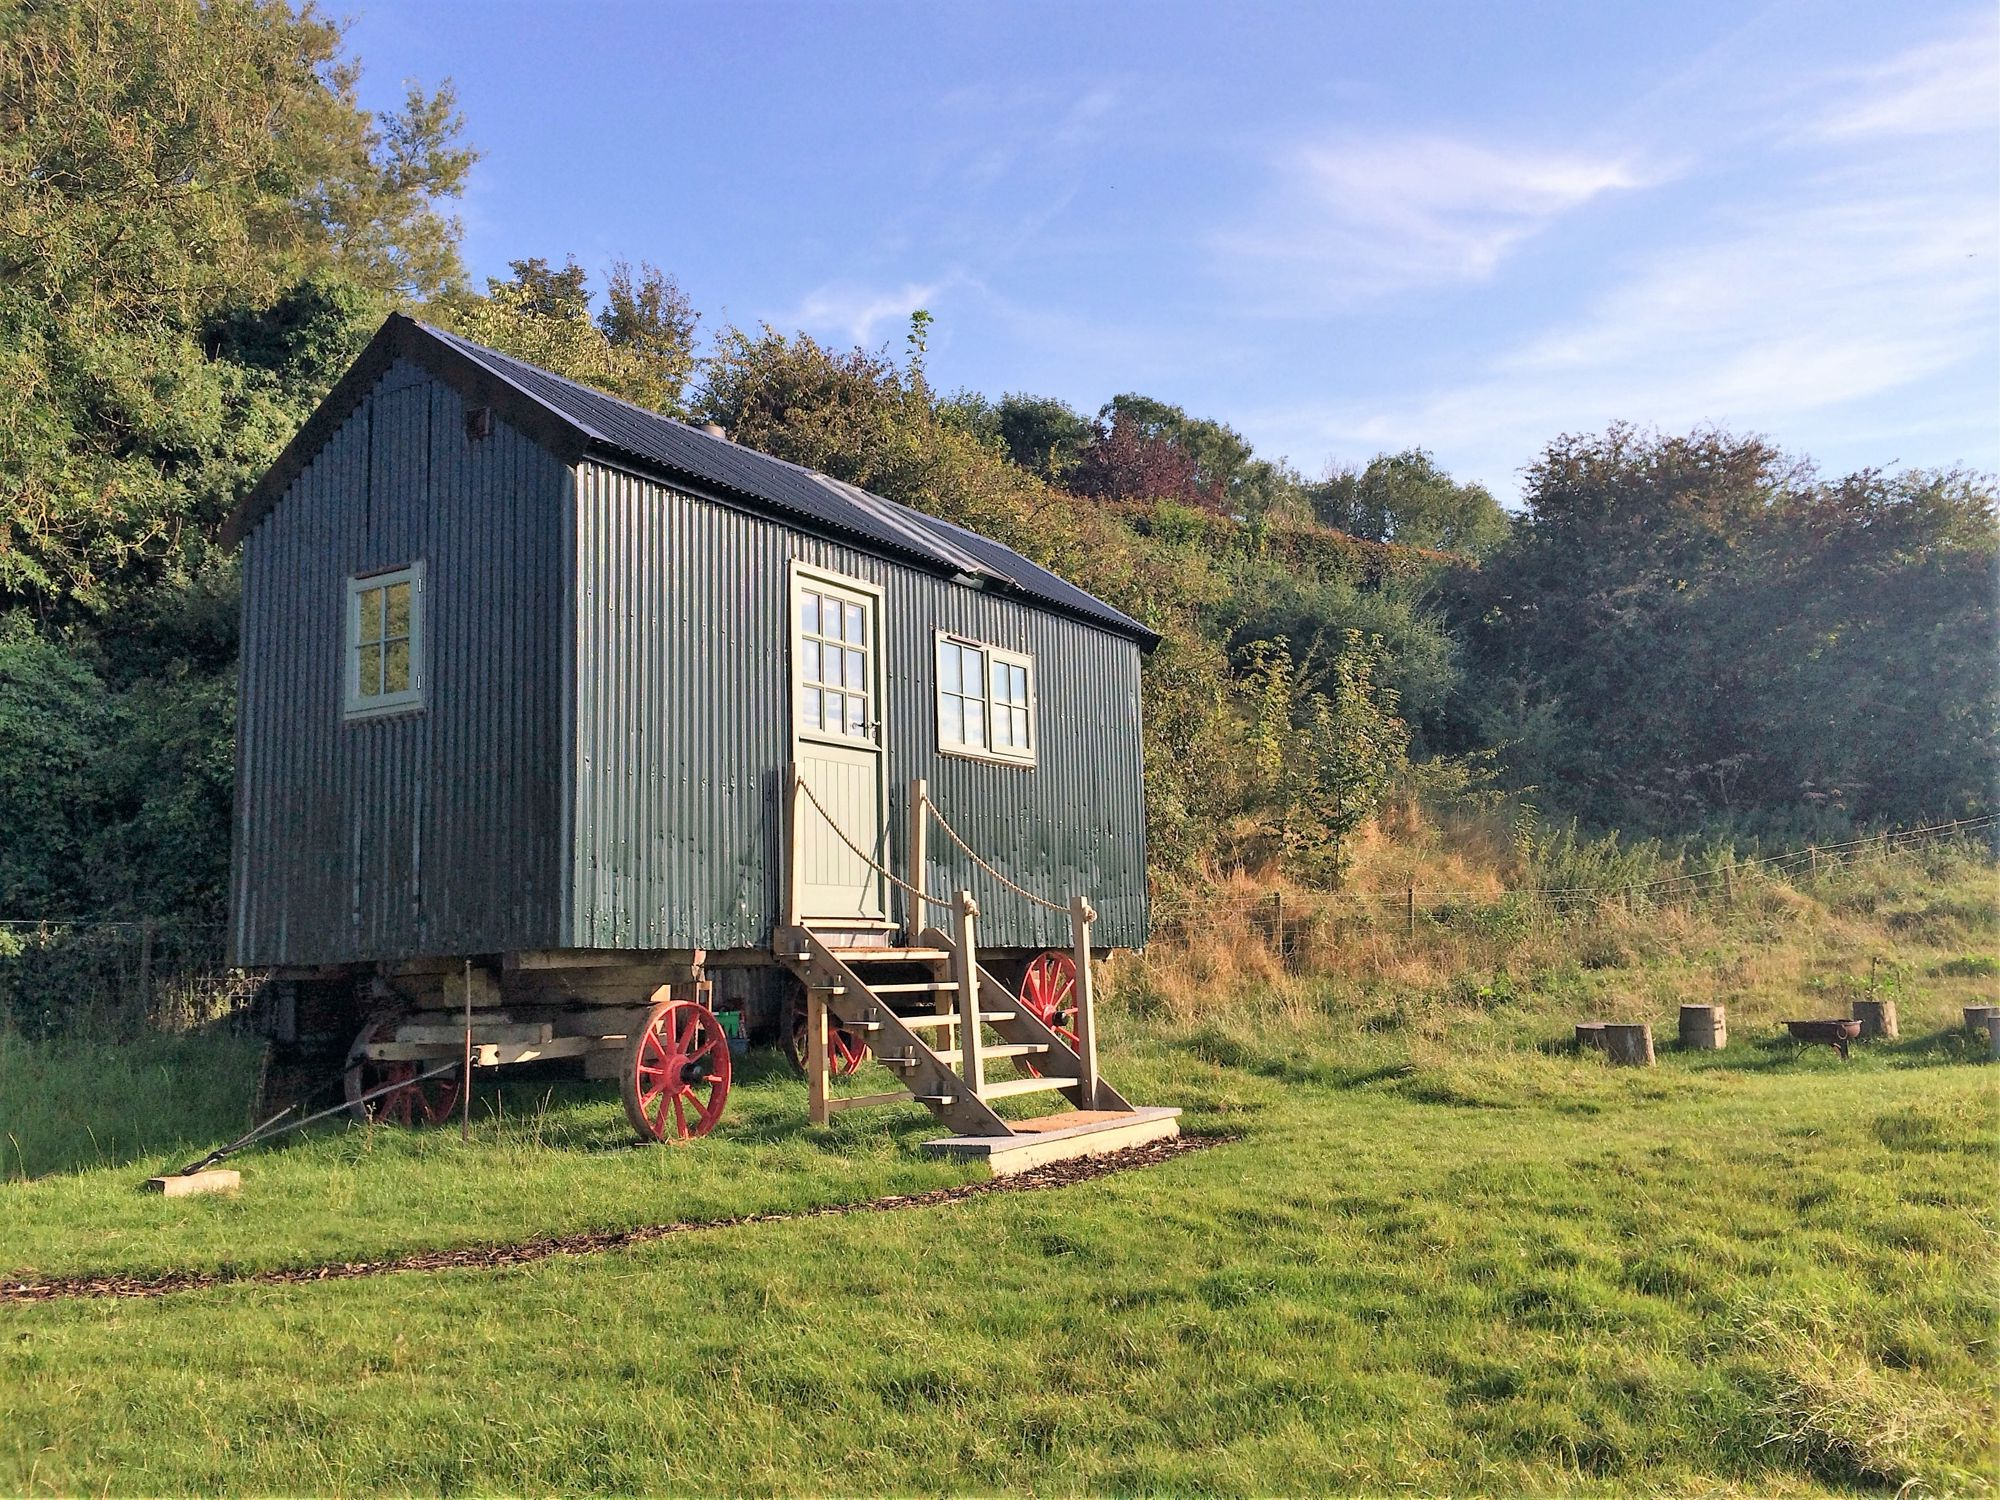 An authentic shepherd's hut in Kent, restored from the 1890s and kitted out for couples with a king-sized bed, wood-burning stove and views over the Kent Downs.